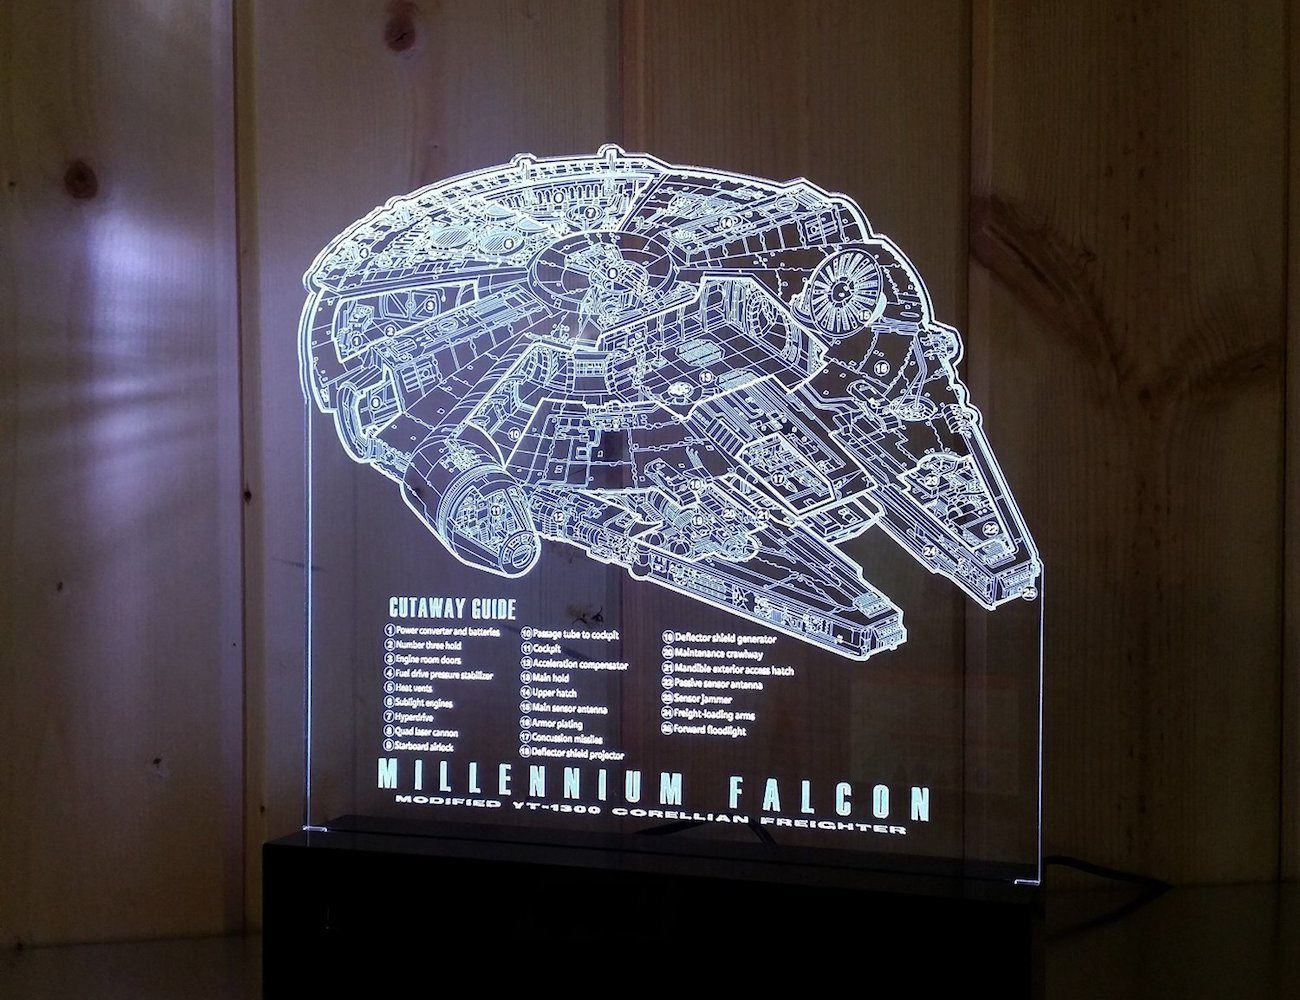 Star+Wars+Millennium+Falcon+Guide+Lamp